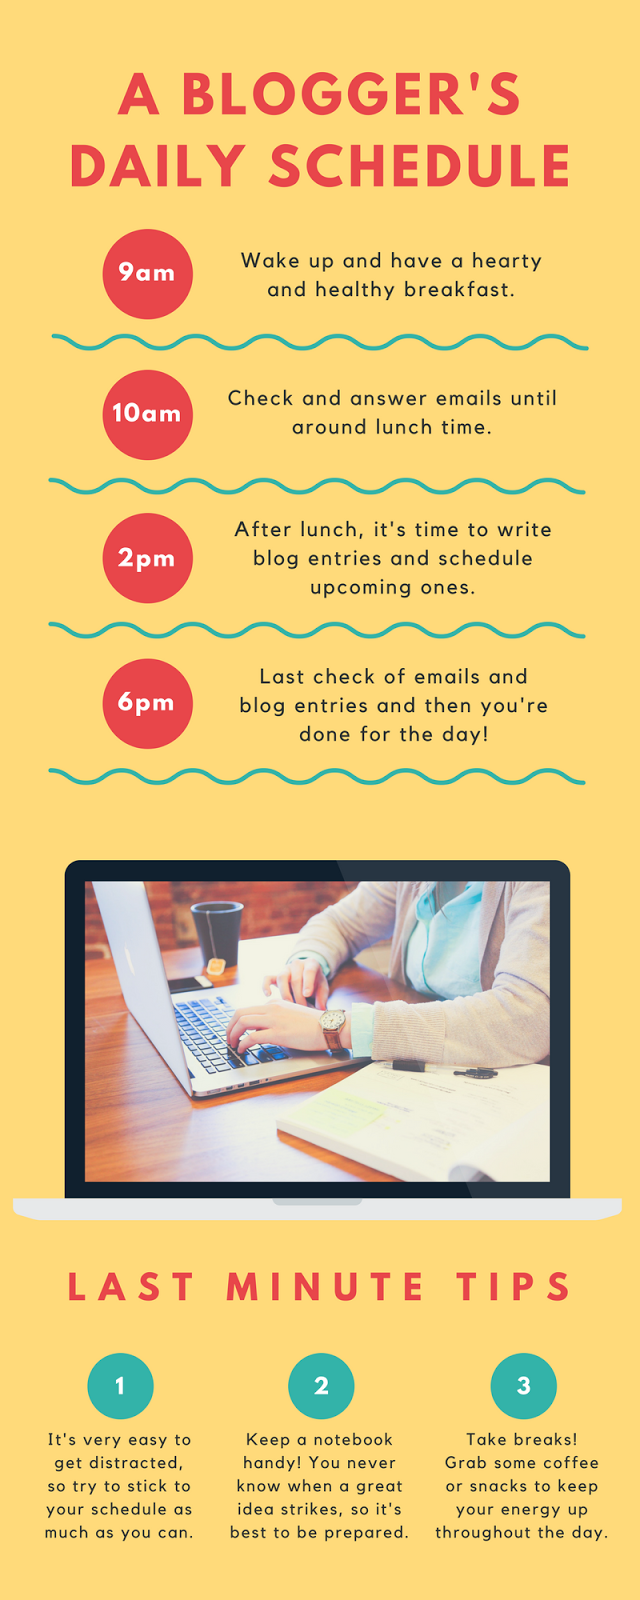 A Blogger's Daily Schedule